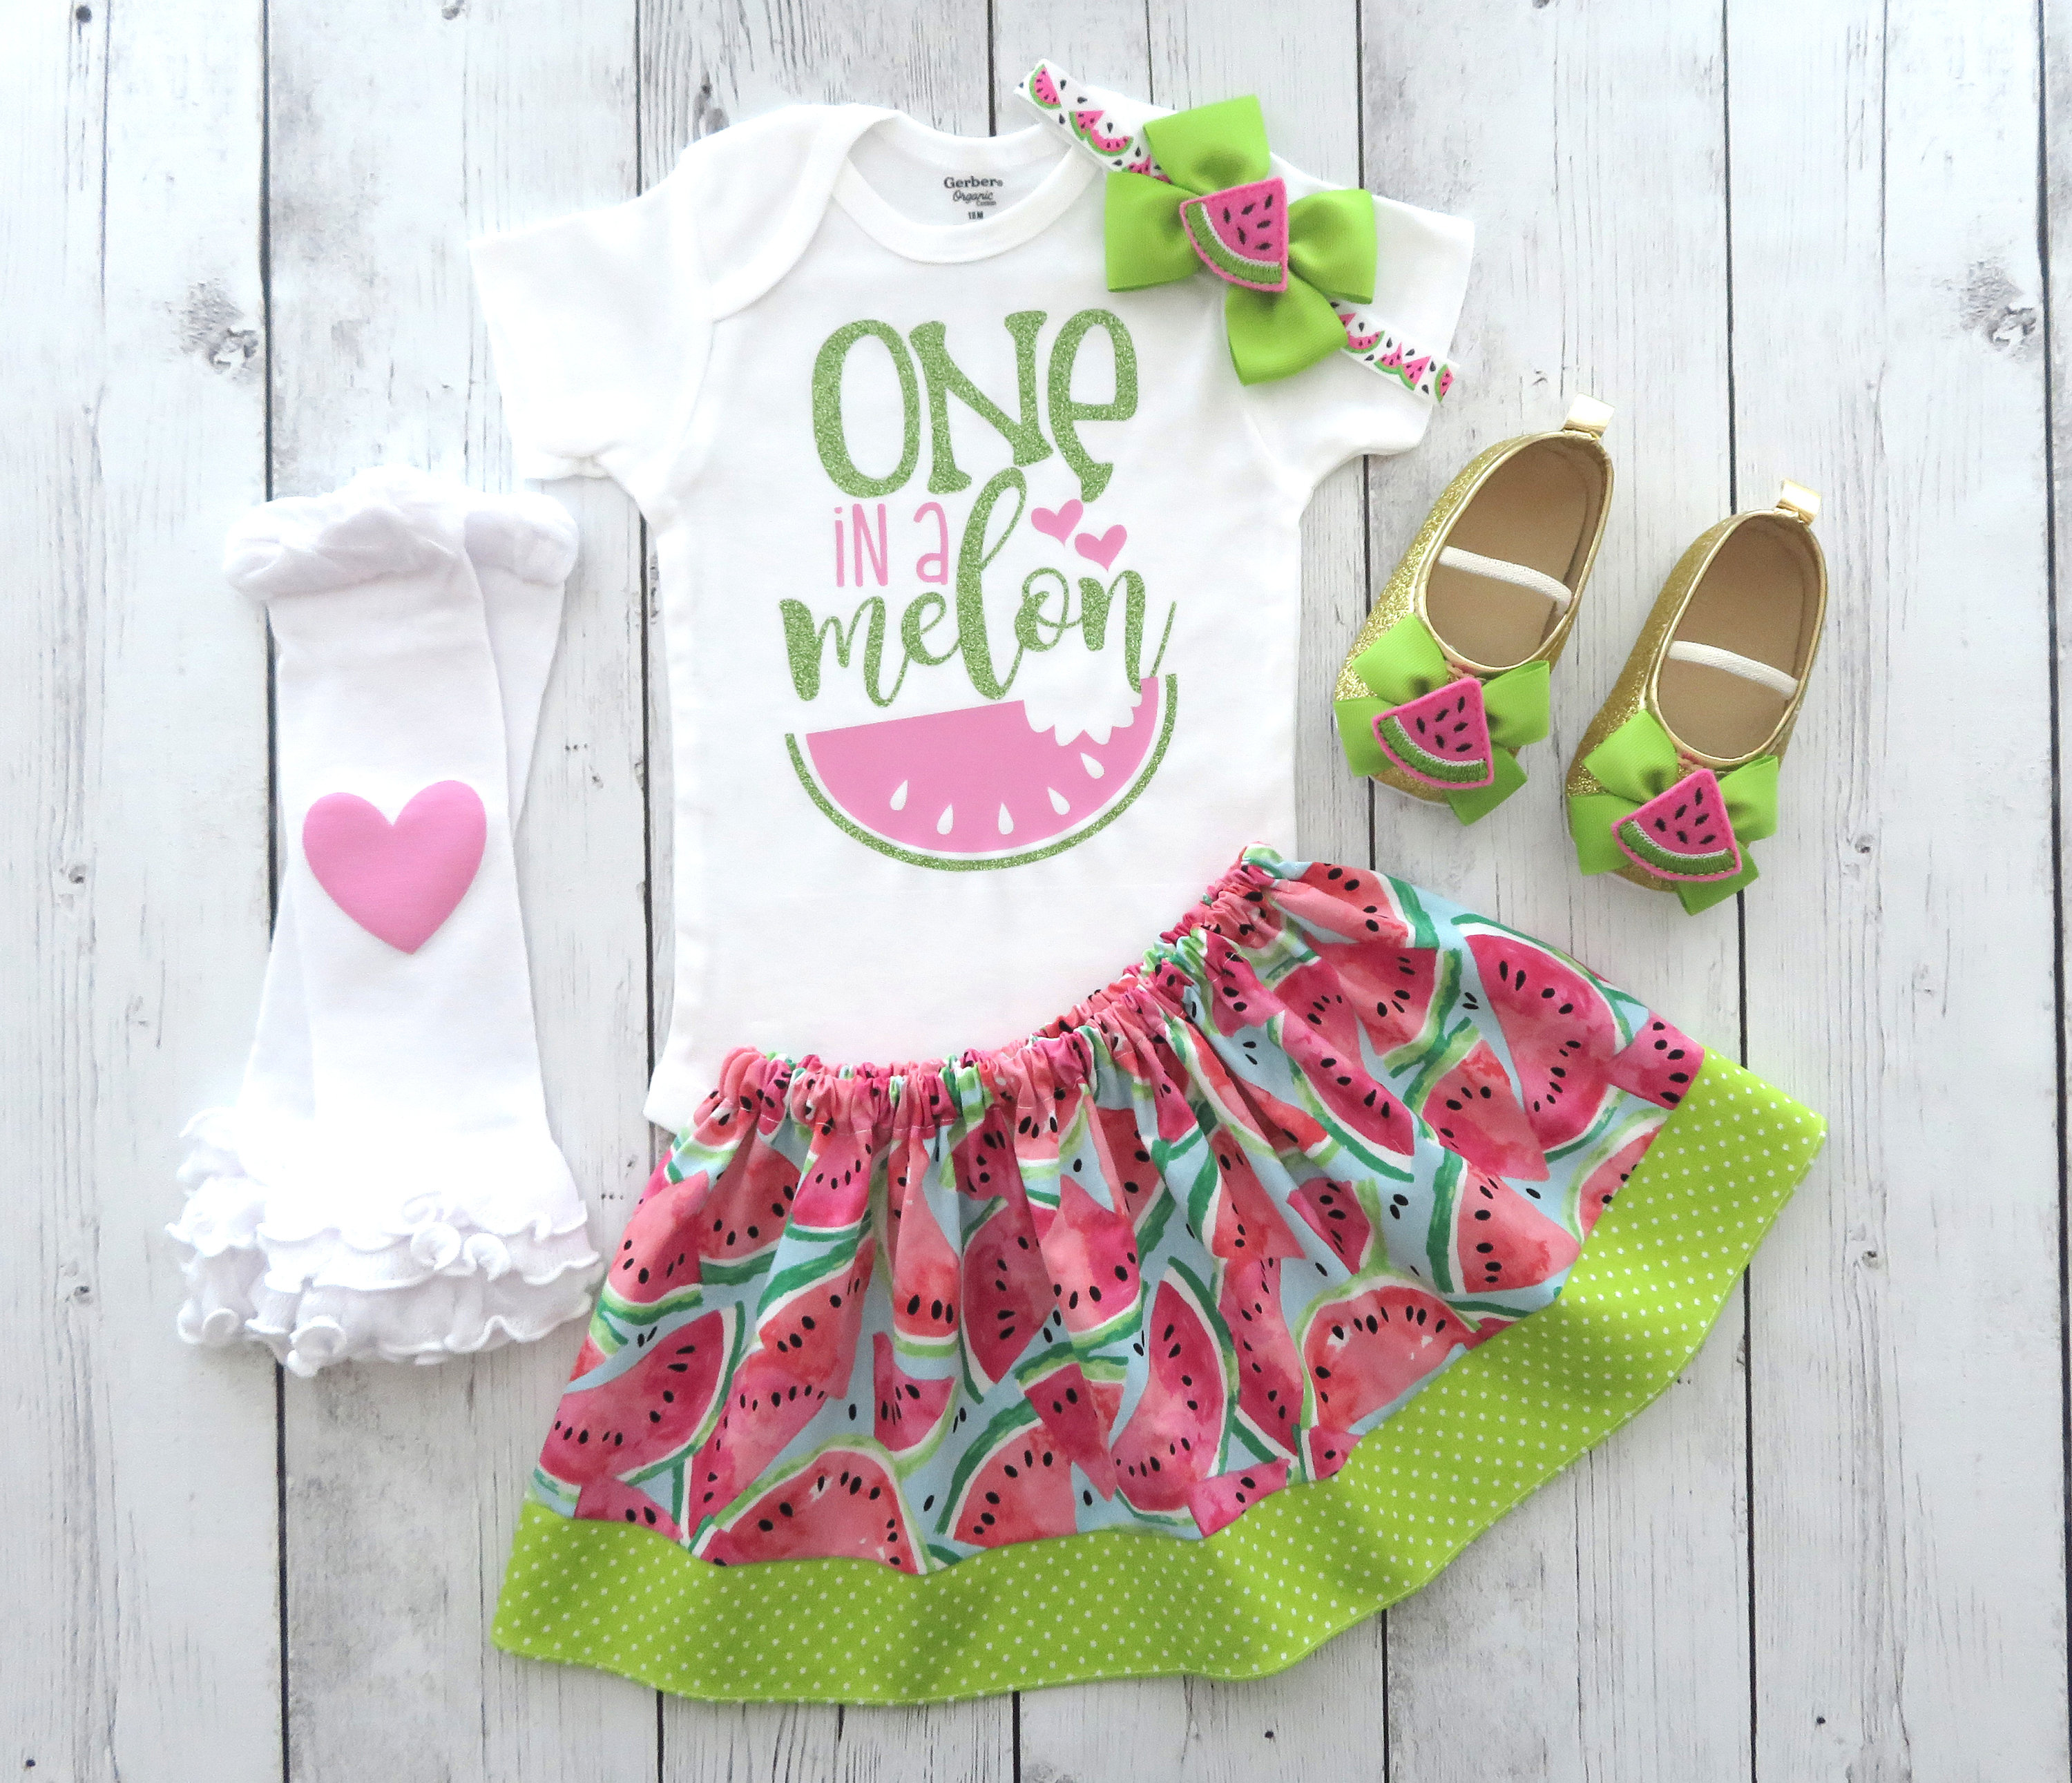 One in a Melon First Birthday Outfit - watermelon 1st bday, watermelon outfit, summer birthday, one year birthday outfit, 1st bday outfit